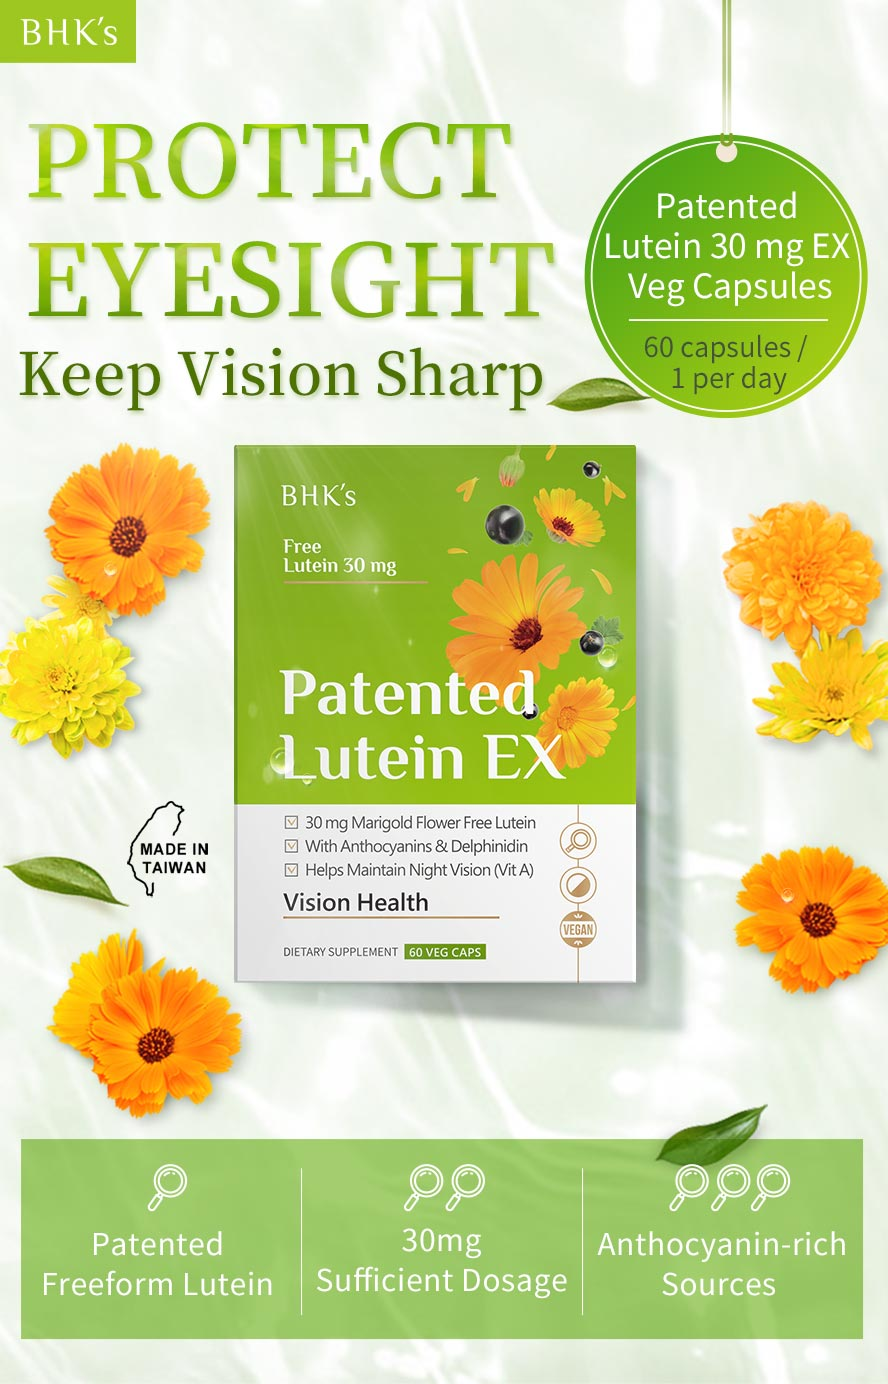 BHK's Lutein 30mg create a bright vision complex formula for eye's clear and health